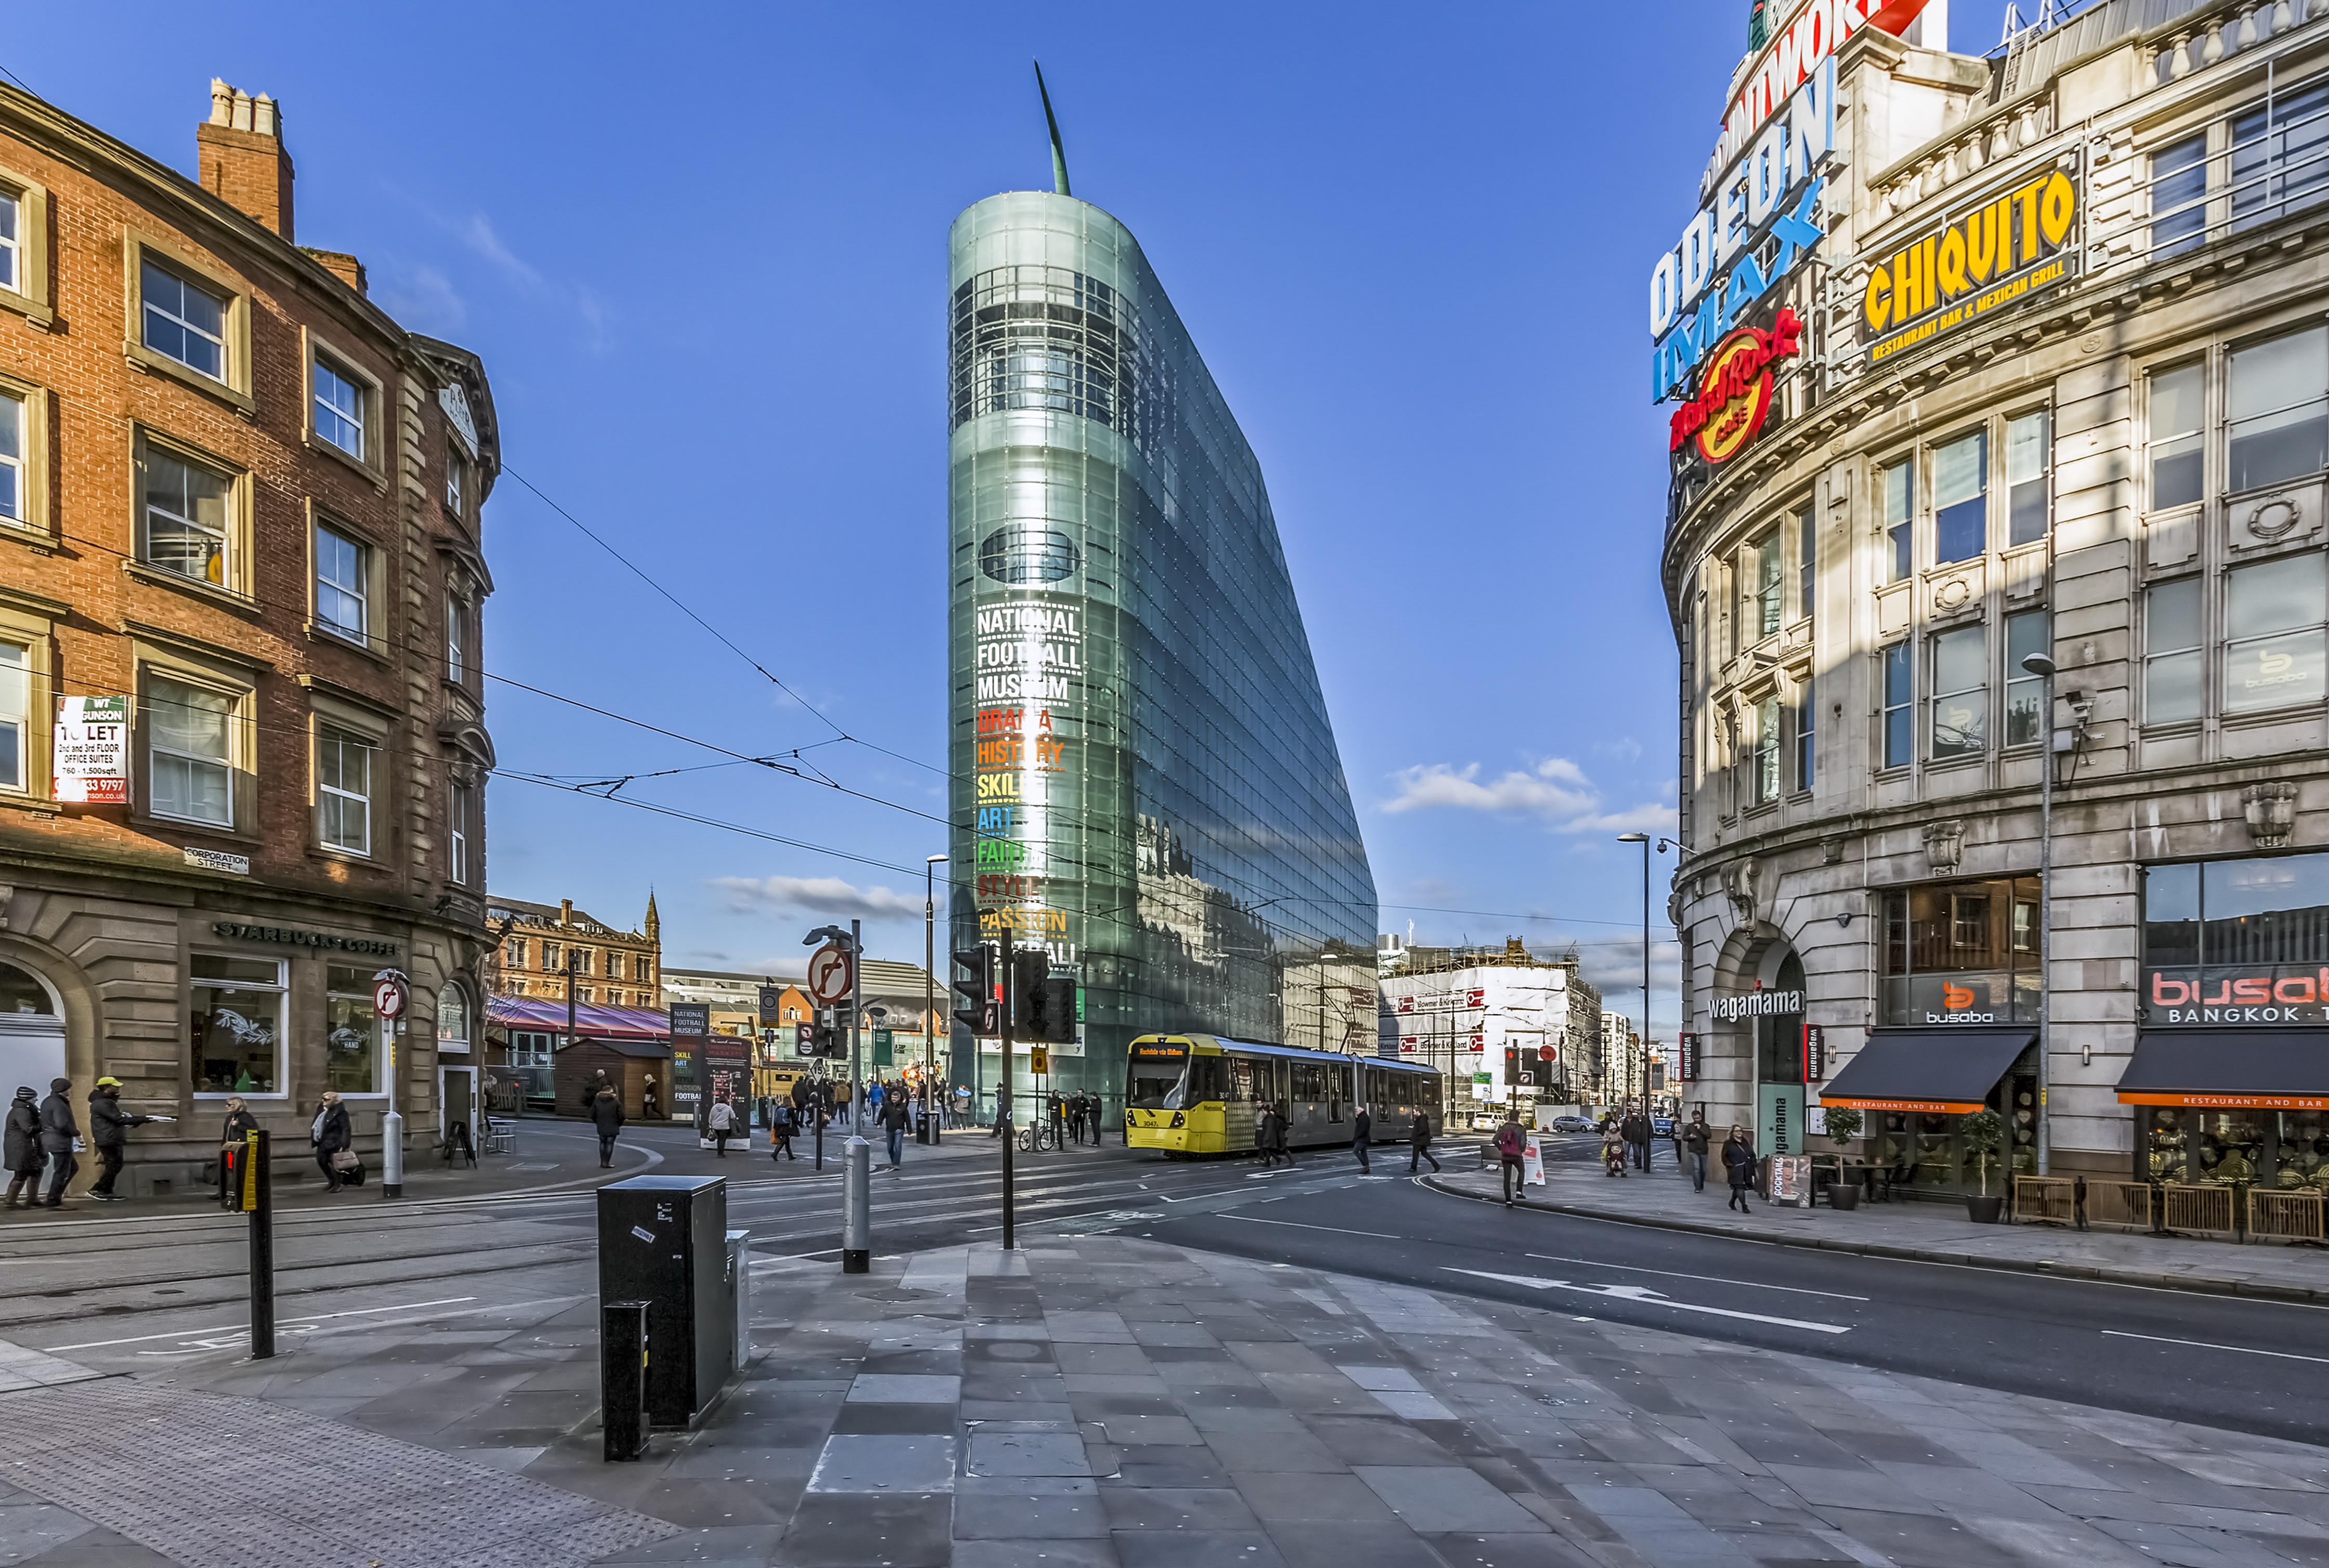 Manchester, UK - November 24, 2016: View of Manchester city center. Tall buildings an be seen on either side of the road and a tram can be seen passing. People can be seen walking on the pavements.